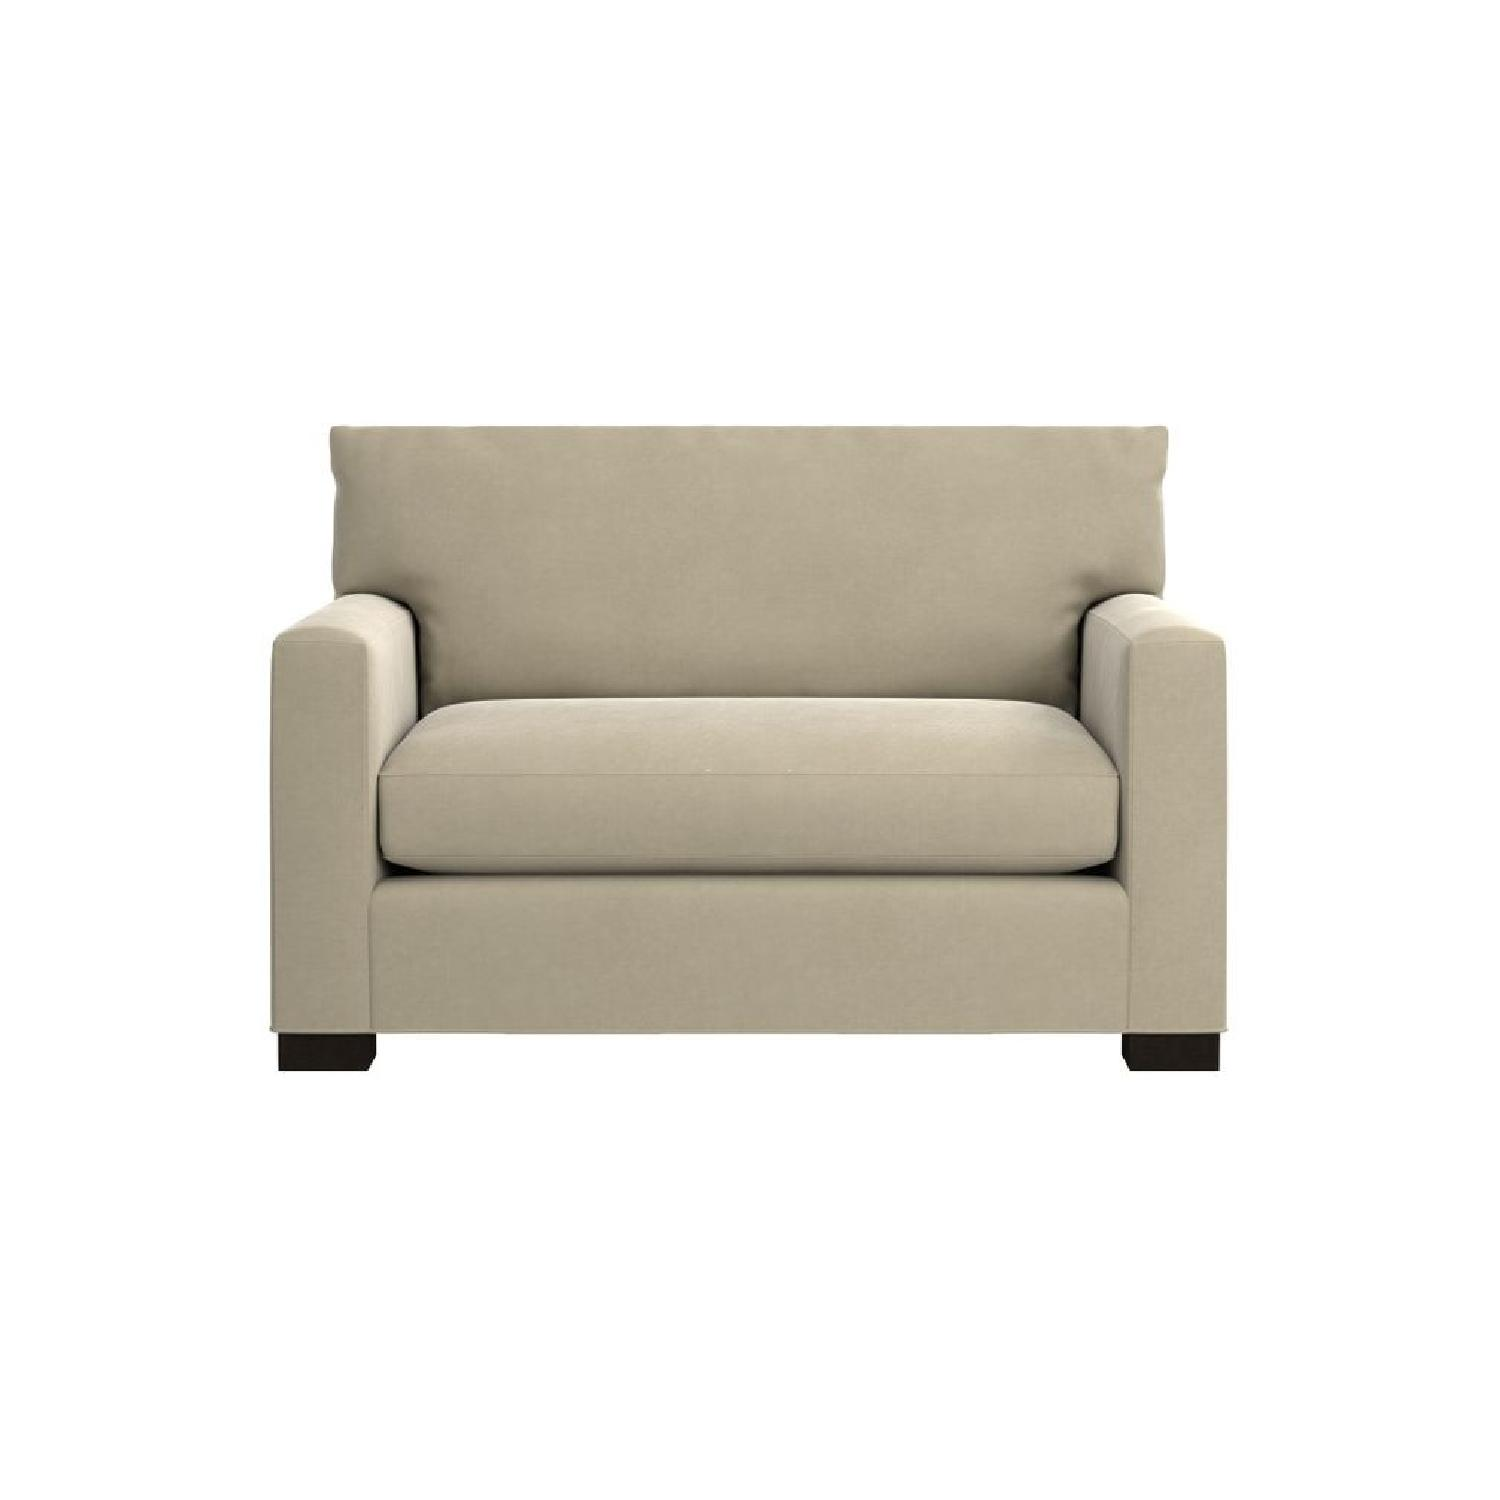 Crate & Barrel Axis II Twin Sleeper Sofa AptDeco